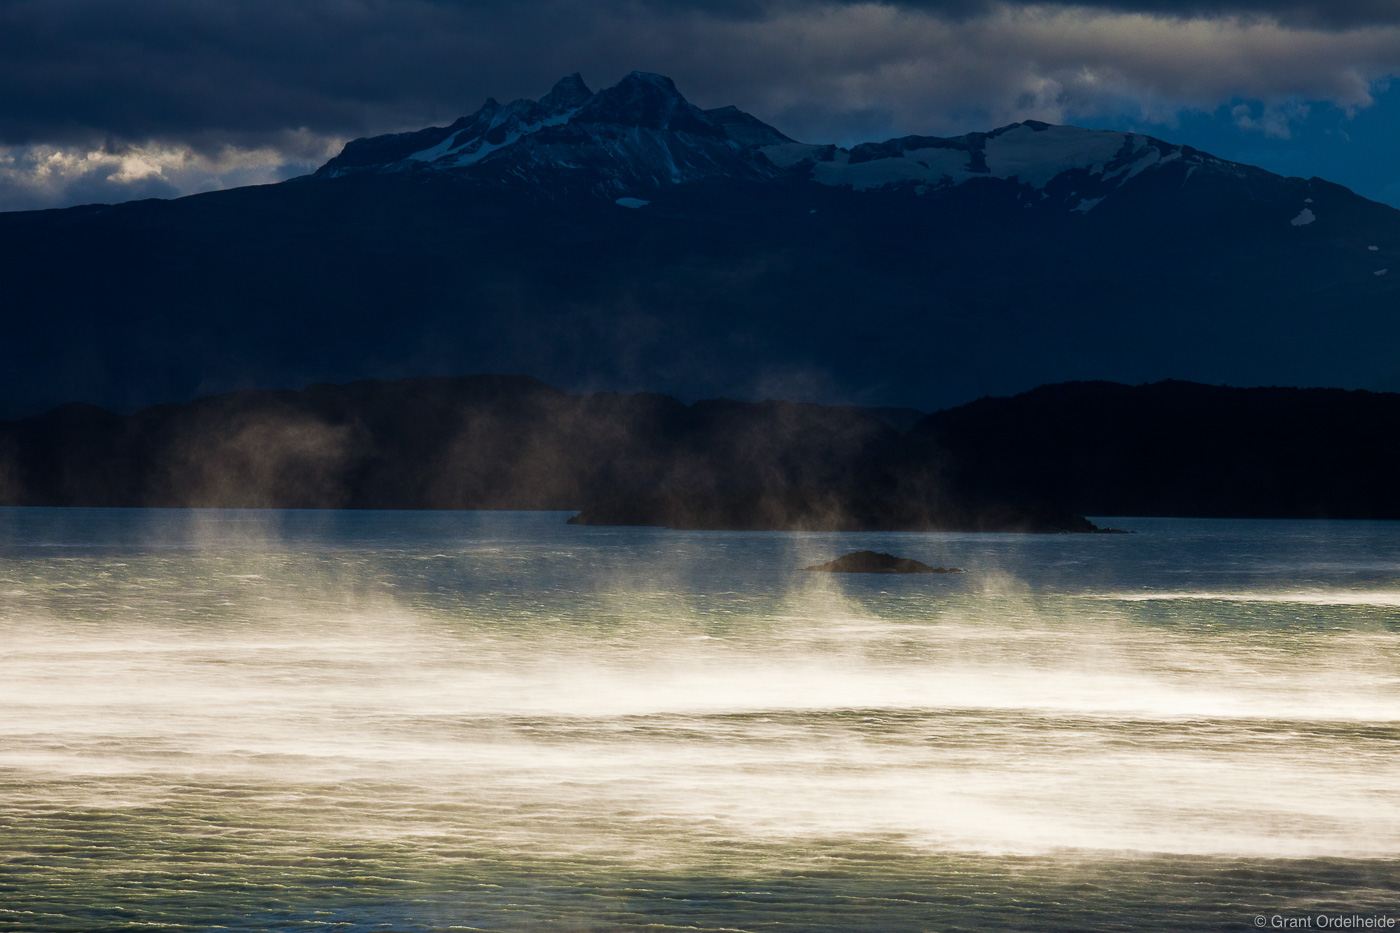 Massive walls of water being blown across the surface of Lago Nordenskjold in Torres del Paine National Park.